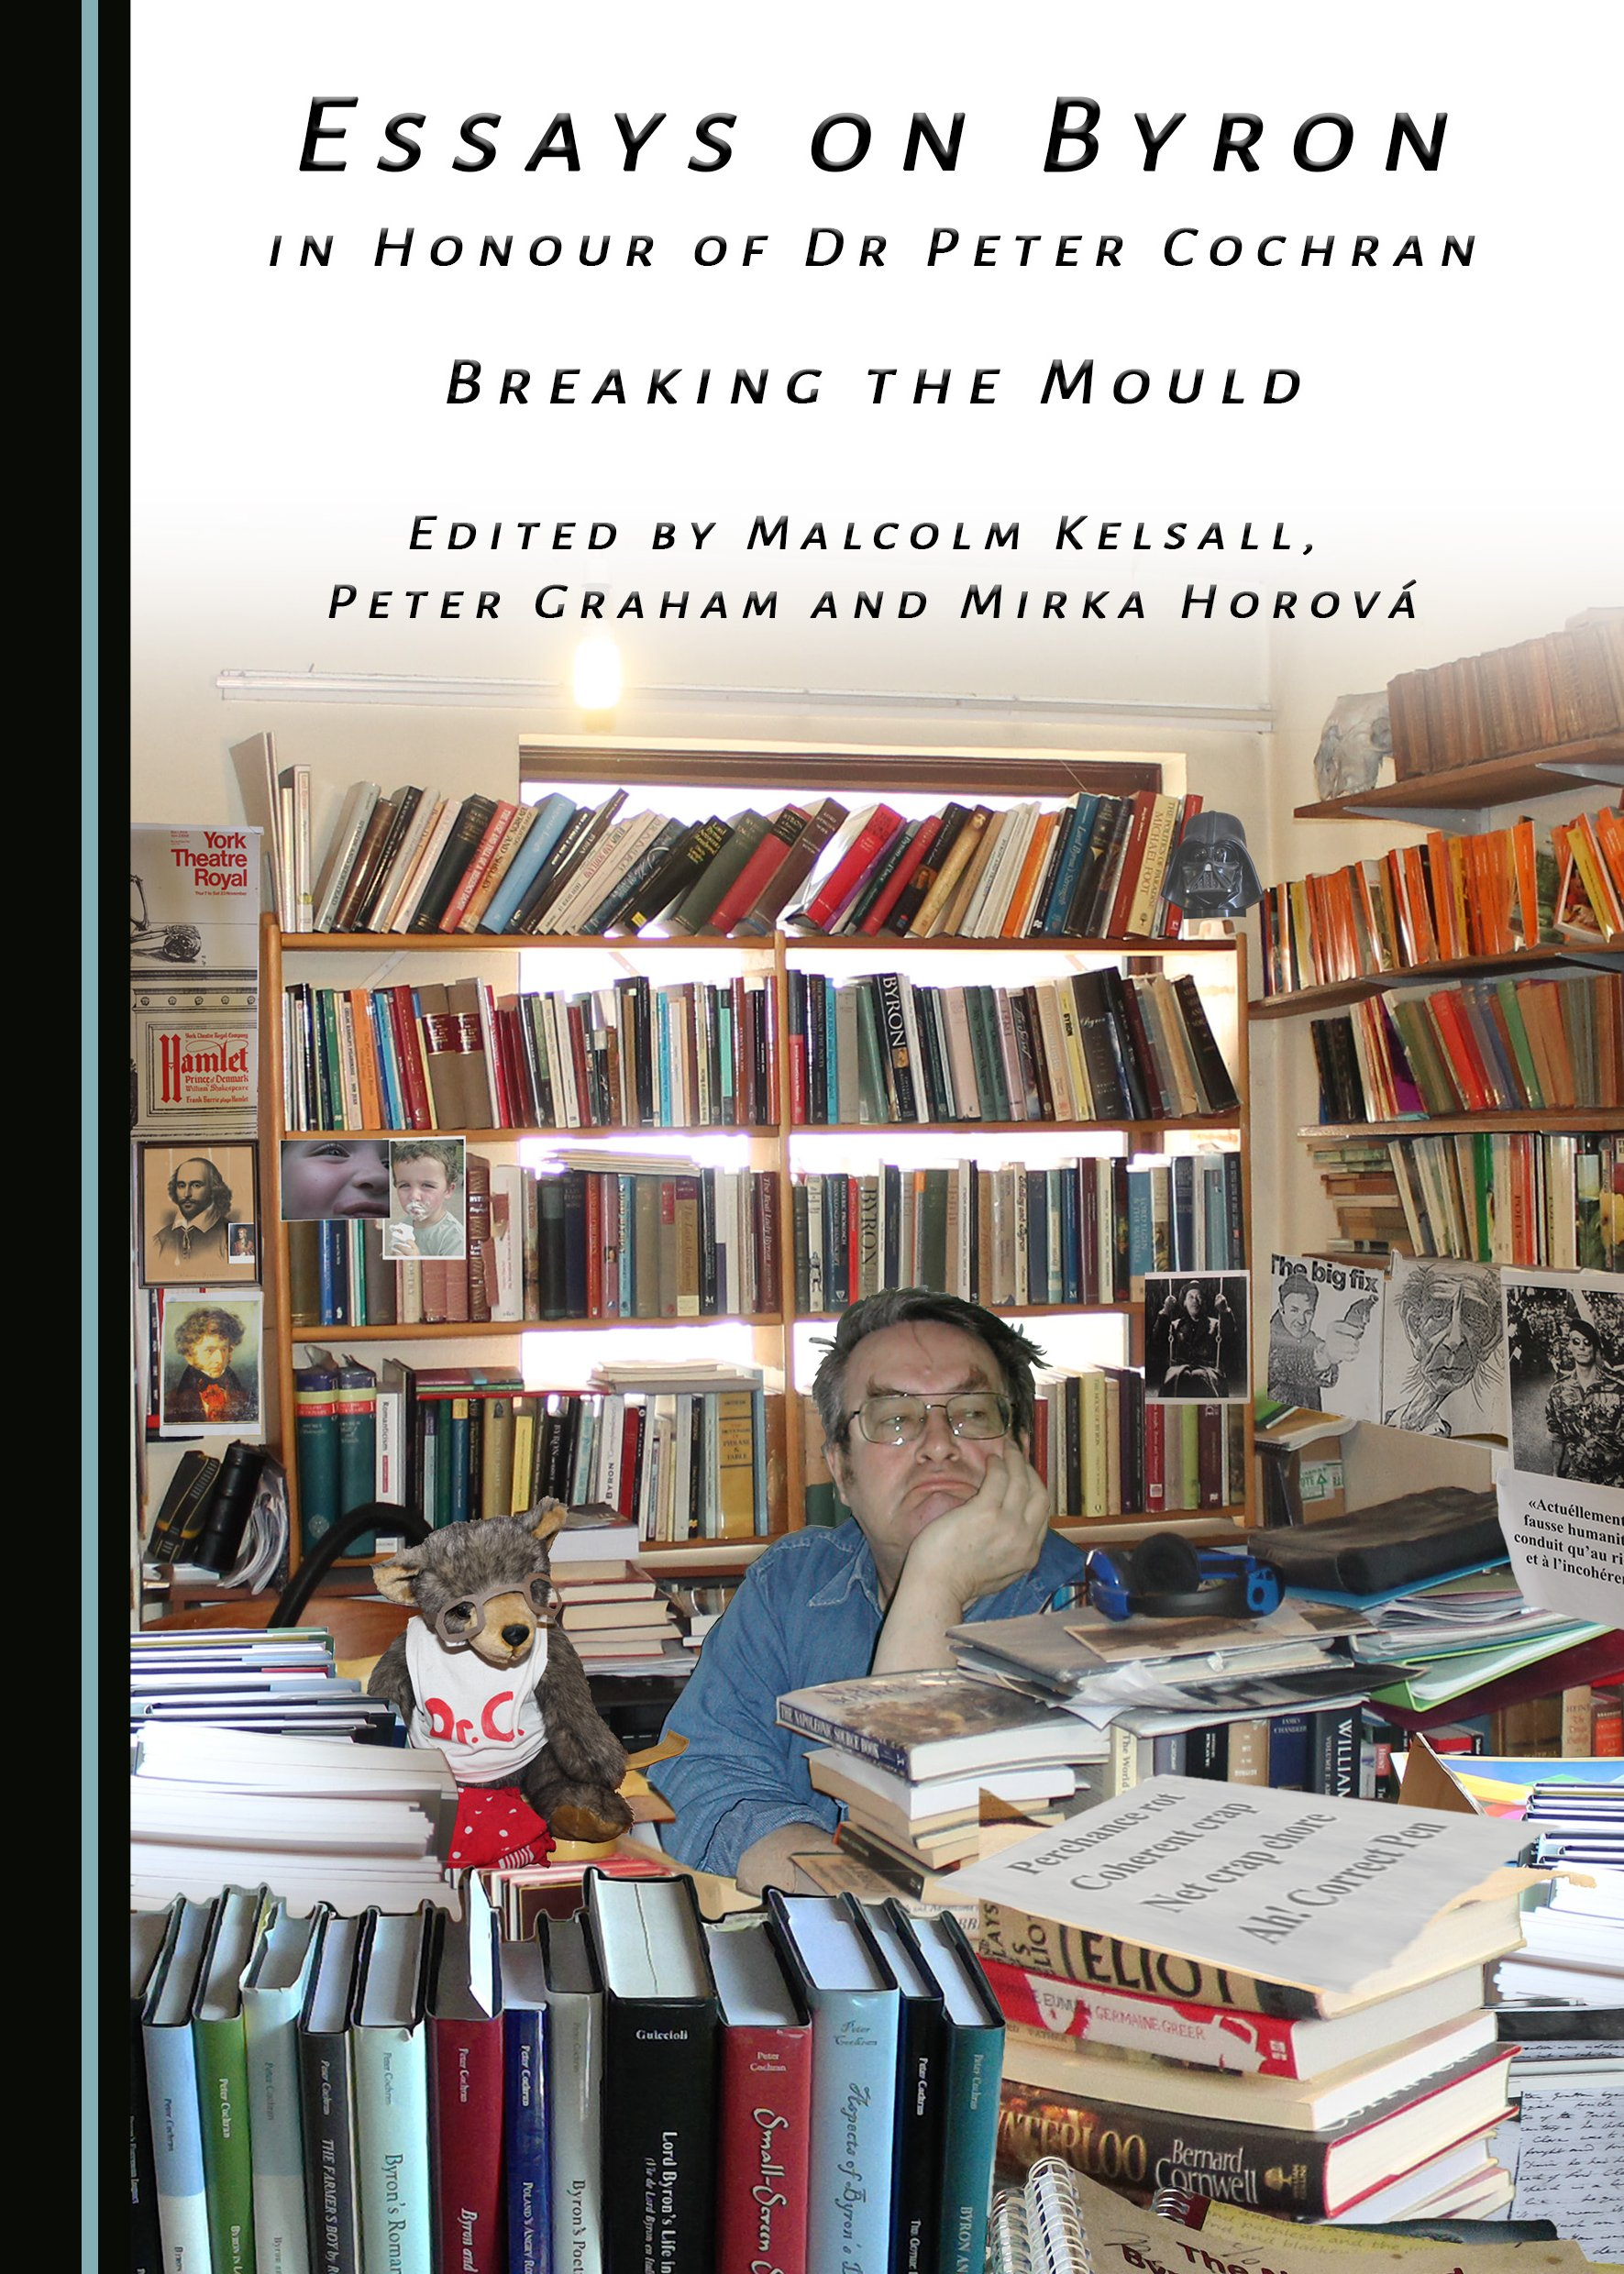 Essays on Byron in Honour of Dr Peter Cochran: Breaking the Mould